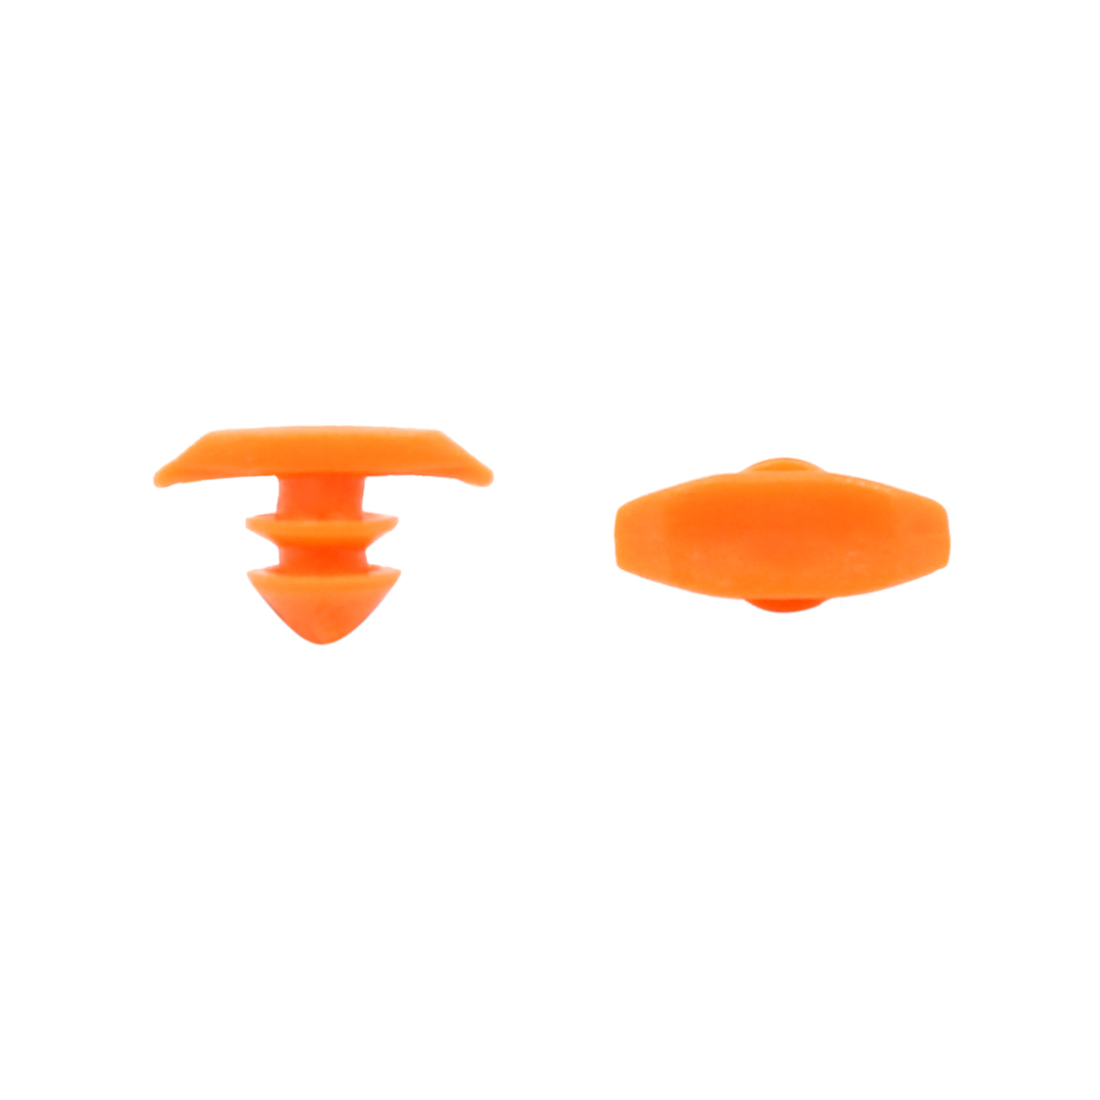 40 Pcs Orange Car Door Fender Push Plastic Rivets Retainer Clip 6mm x 6mm x 8mm